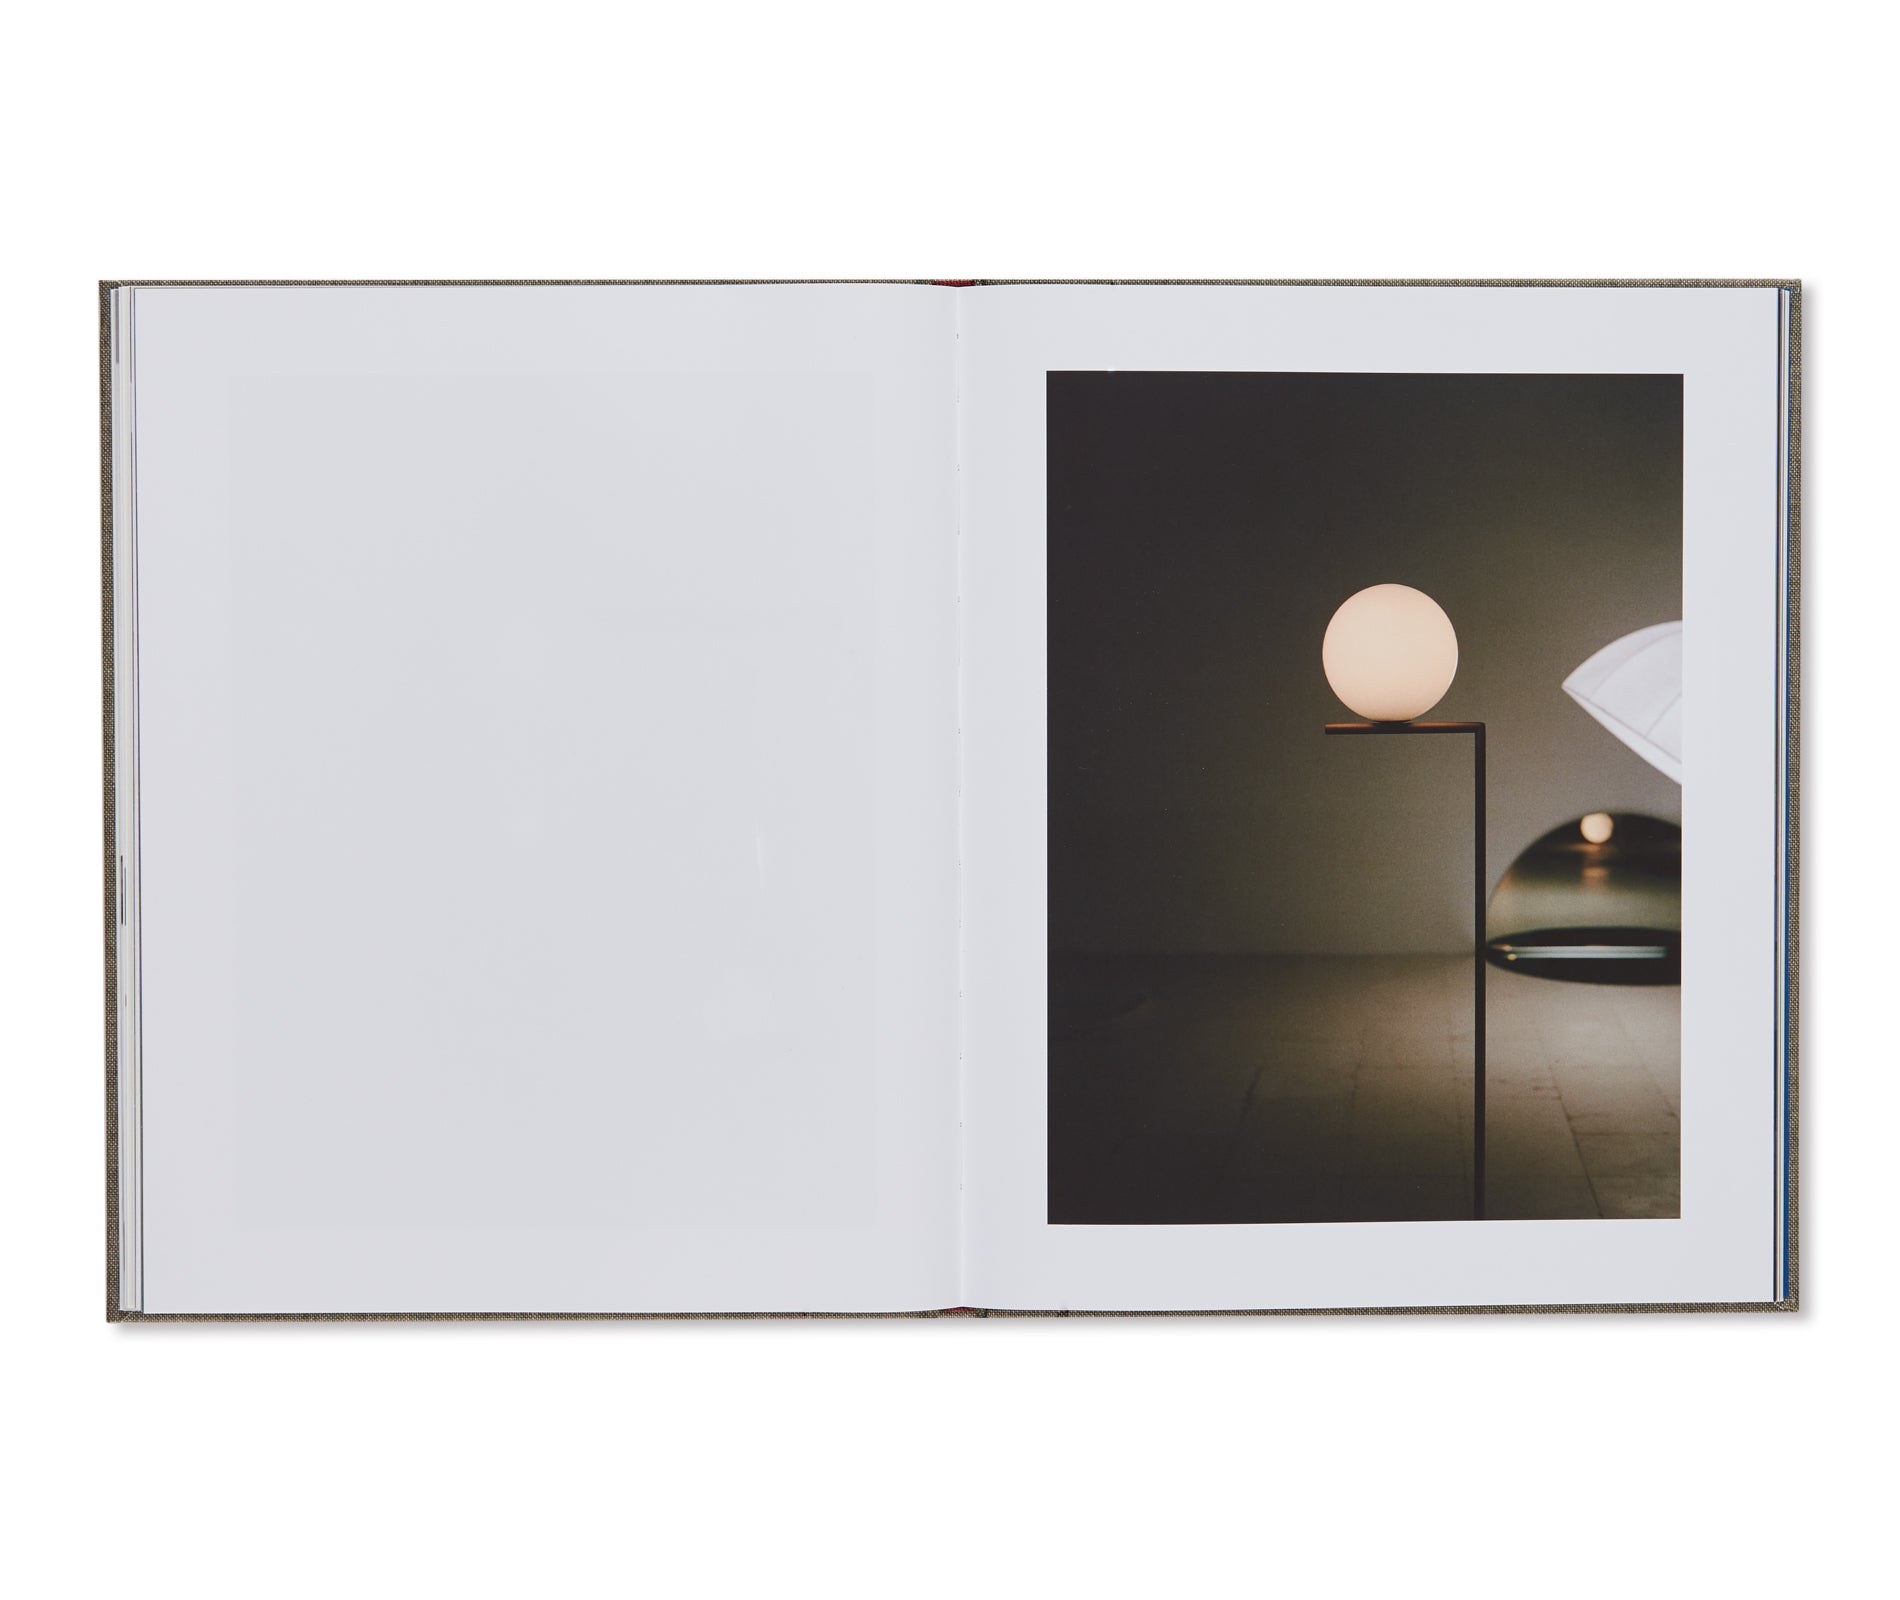 THINGS THAT GO TOGETHER by Michael Anastassiades